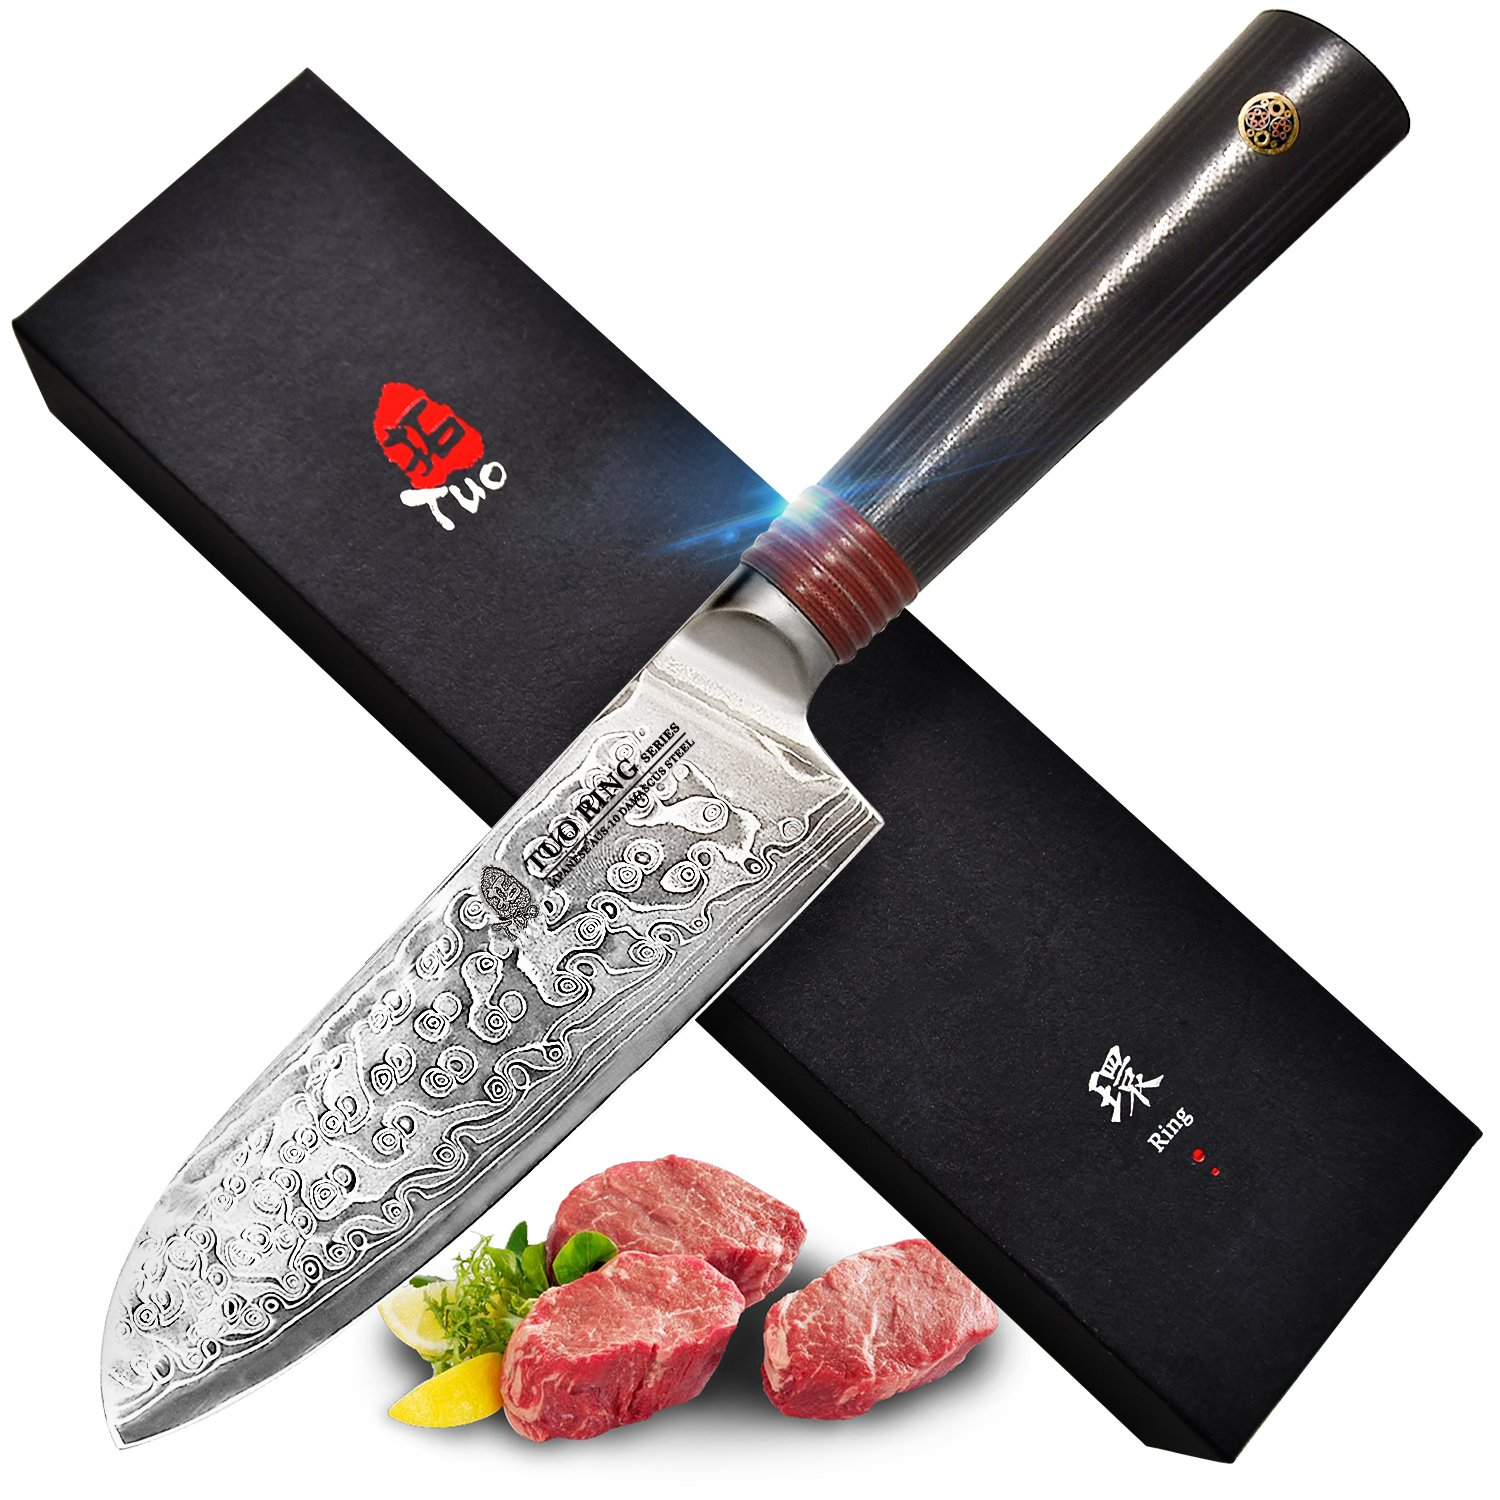 TUO Cutlery Santoku Knife 5.5 inch, Japanese AUS-10 High Carbon Rose Damascus Steel, Asian Kitchen Knife with Ergonomic G10 Handle - RING R Series by TUO Cutlery